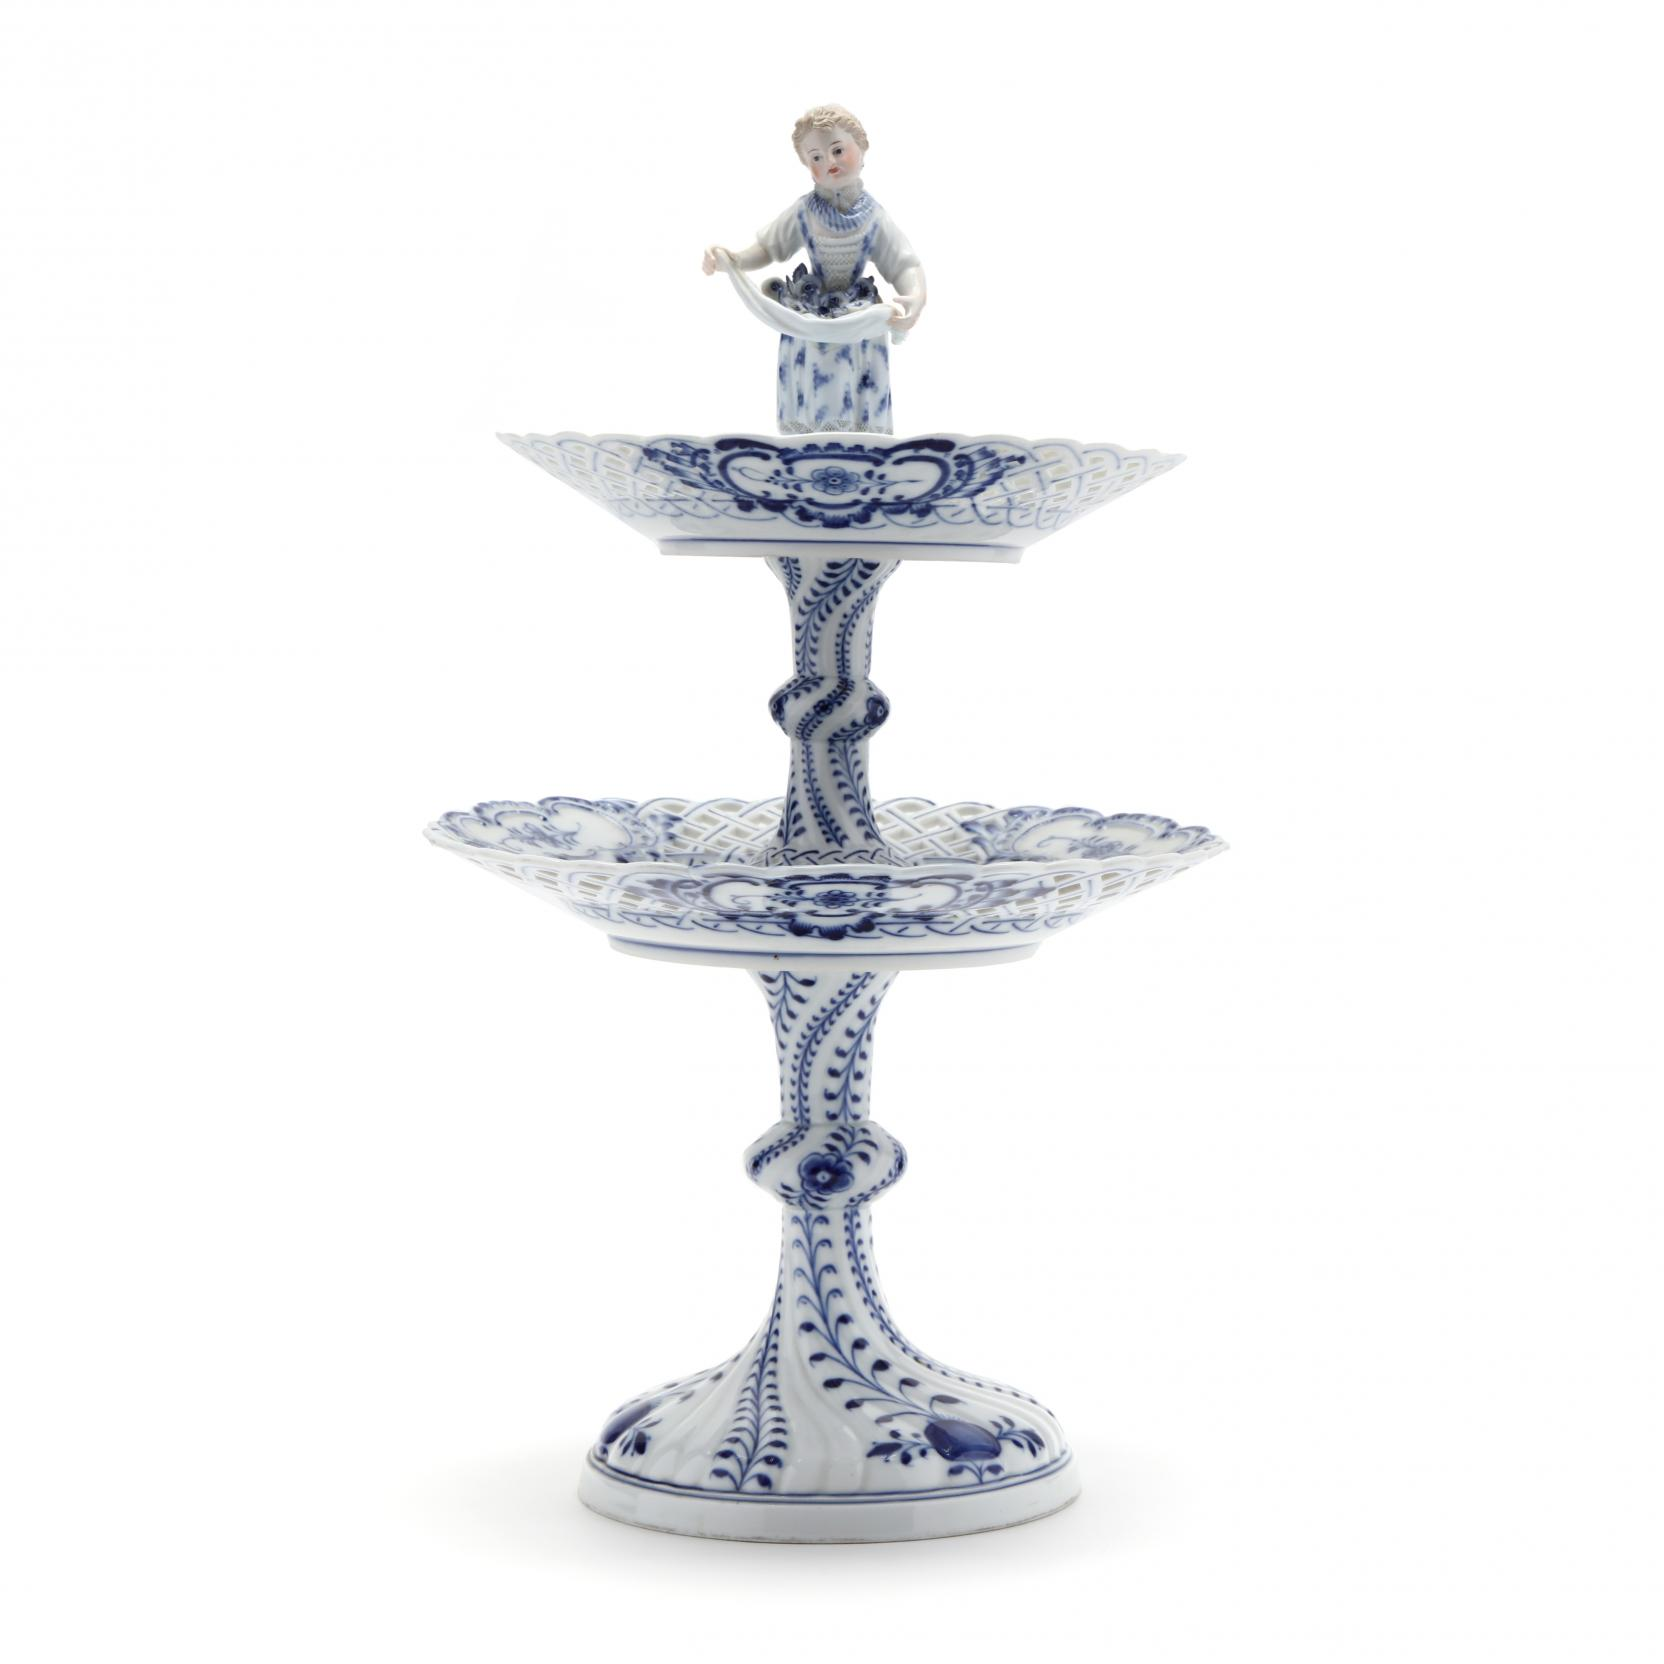 a-meissen-two-tier-dessert-stand